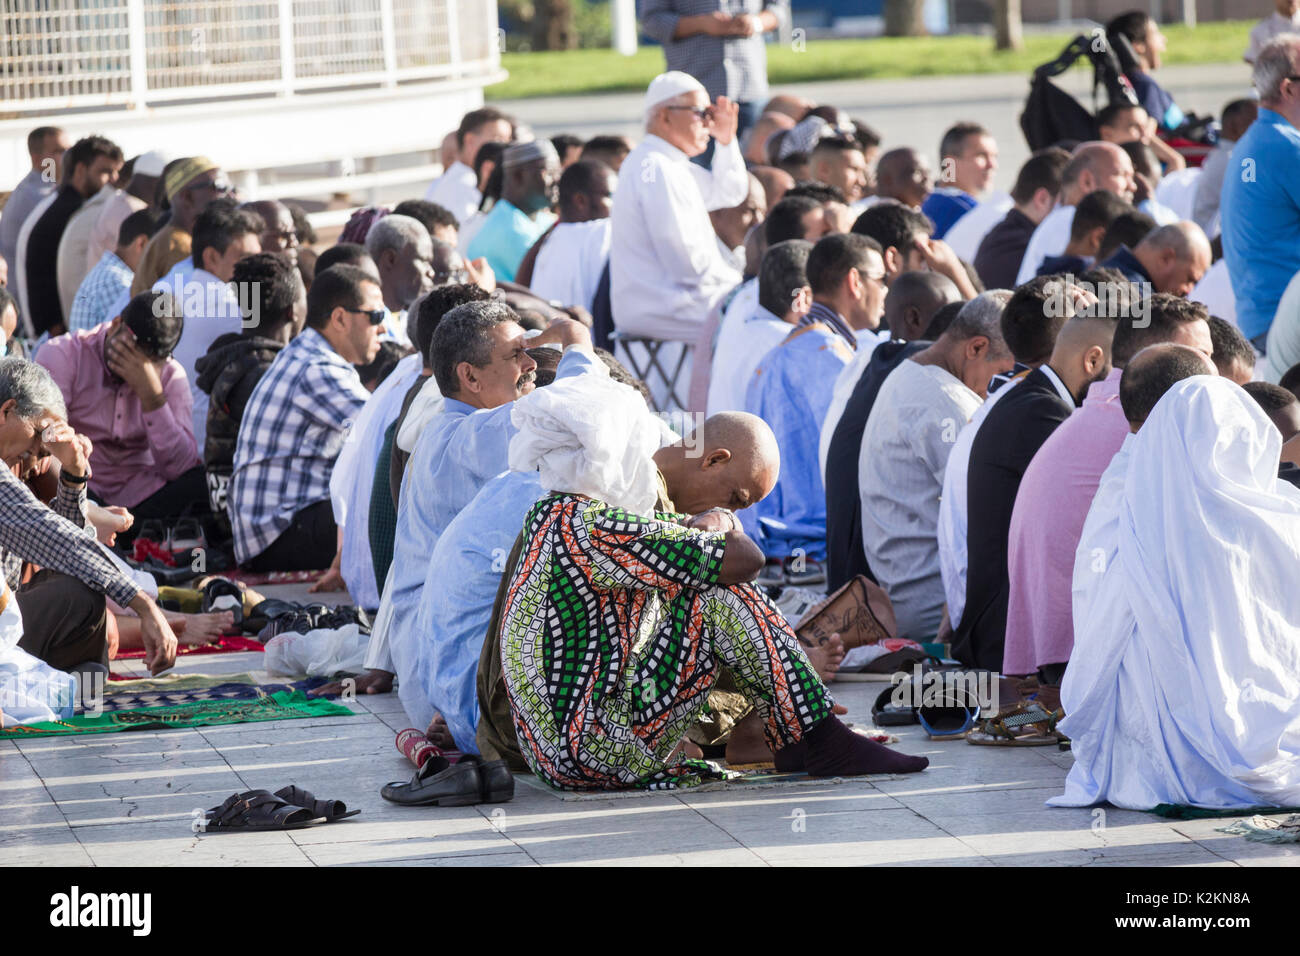 Las Palmas, Gran Canaria, Canary Islands, Spain. 1st September, 2017. Spain: Hundred of Muslims in Las Palmas, the capital of Gran Canaria, gather for prayers to celebrate Eid al-Adha ( 'sacrifice feast') on Friday morning. - Stock Image